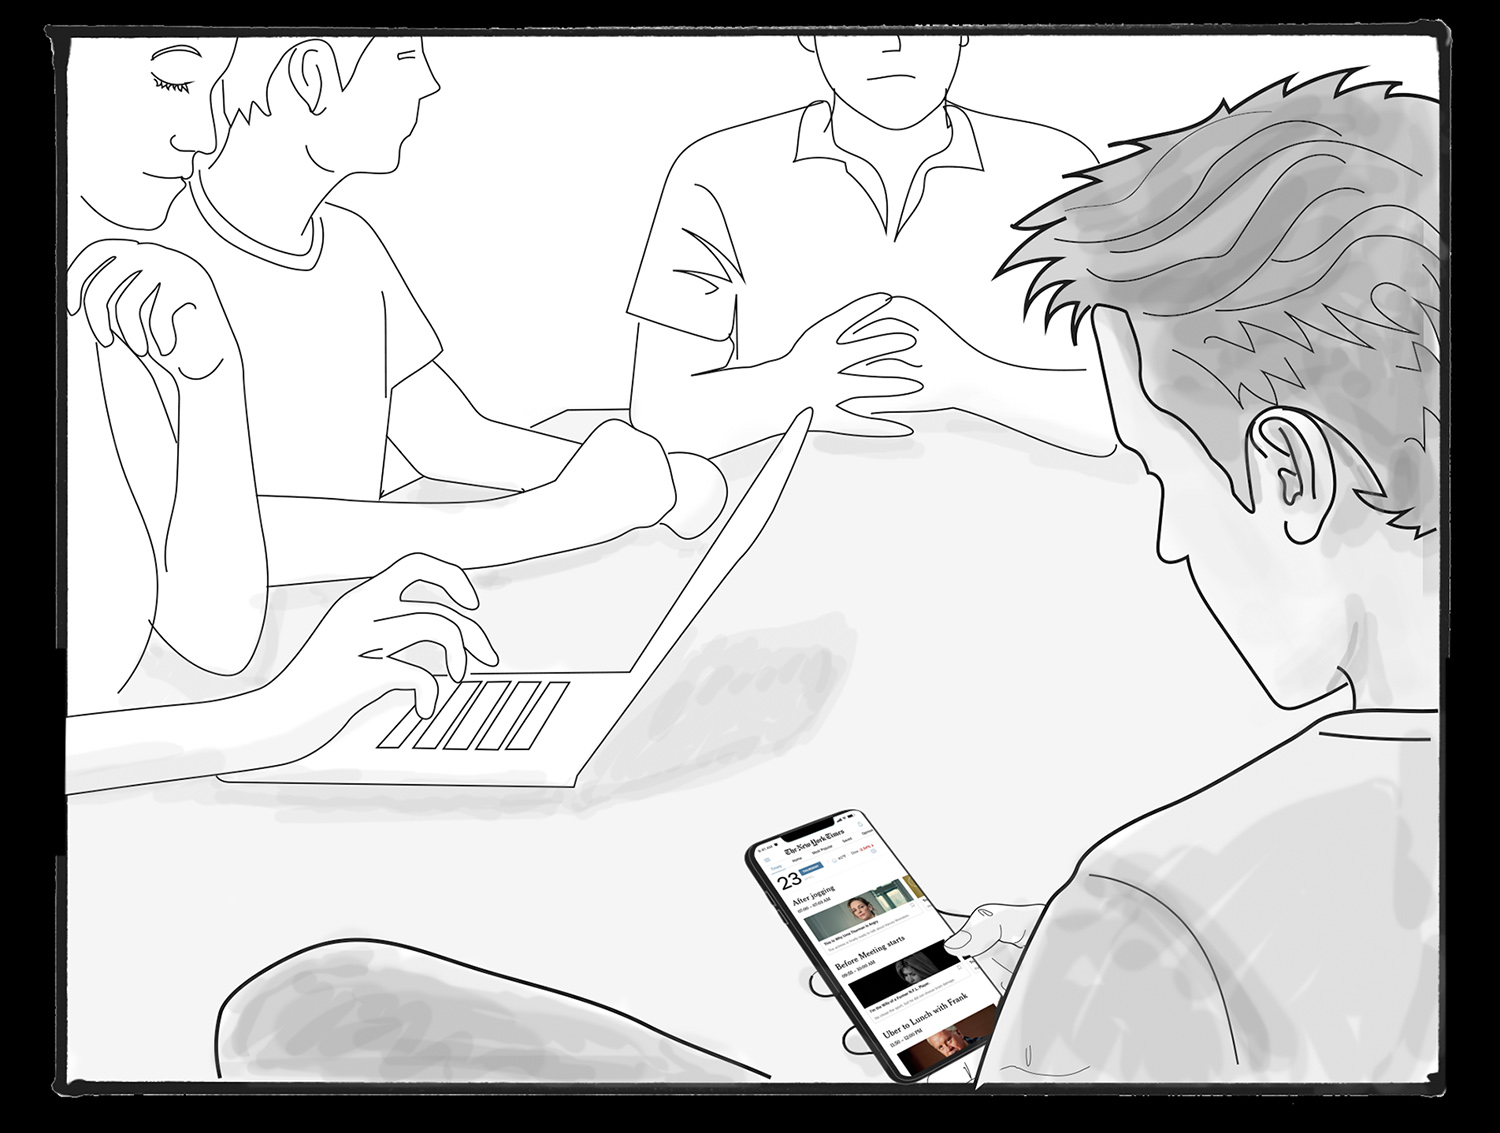 Storyboard_Sketch_7b_UI_color.jpg